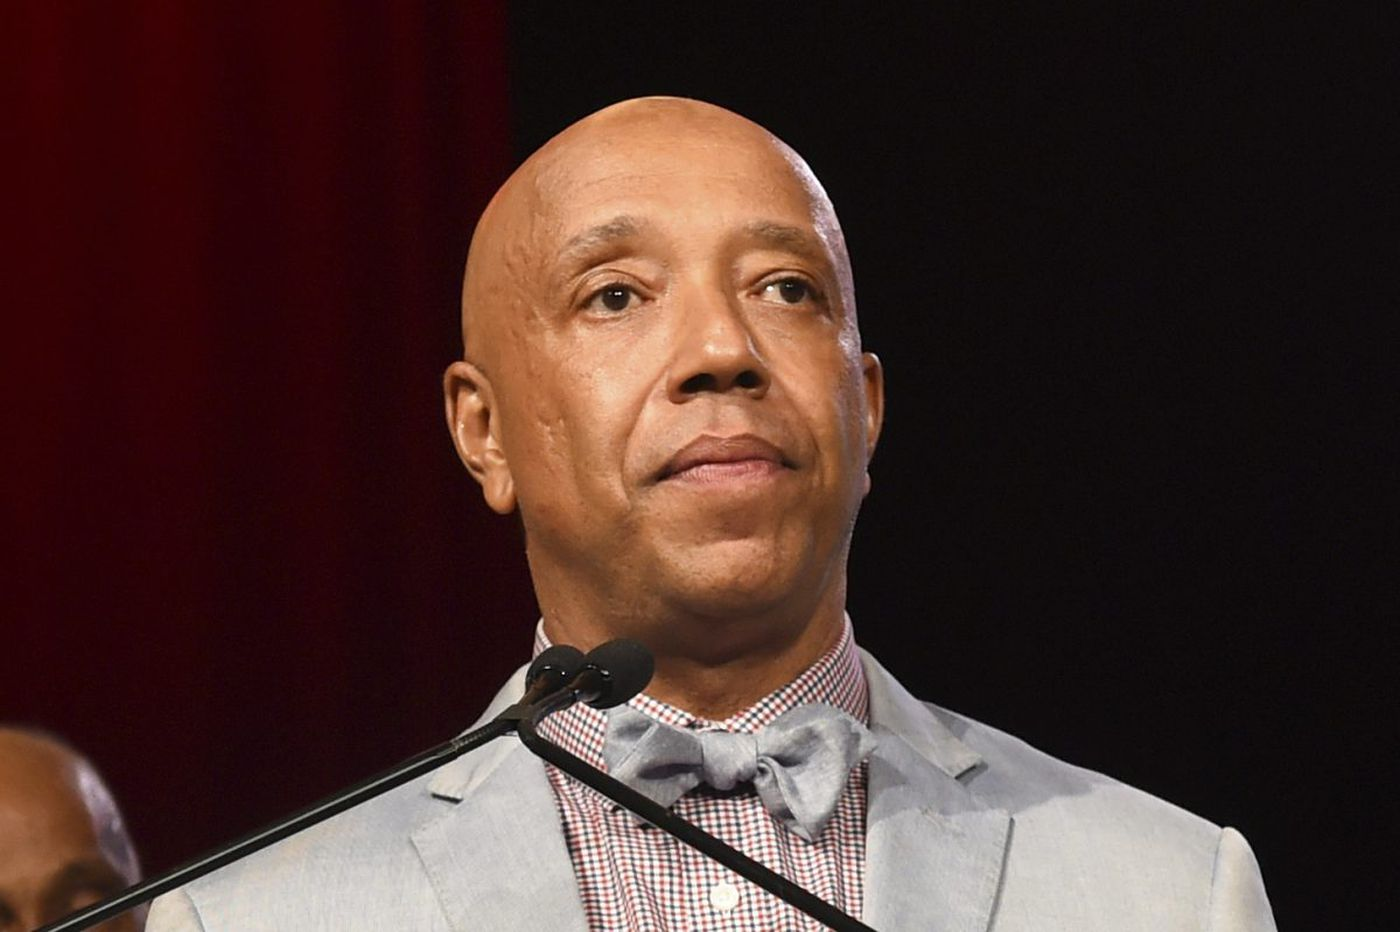 NYPD investigating Russell Simmons amid rape allegations. Rap mogul responds #Notme.